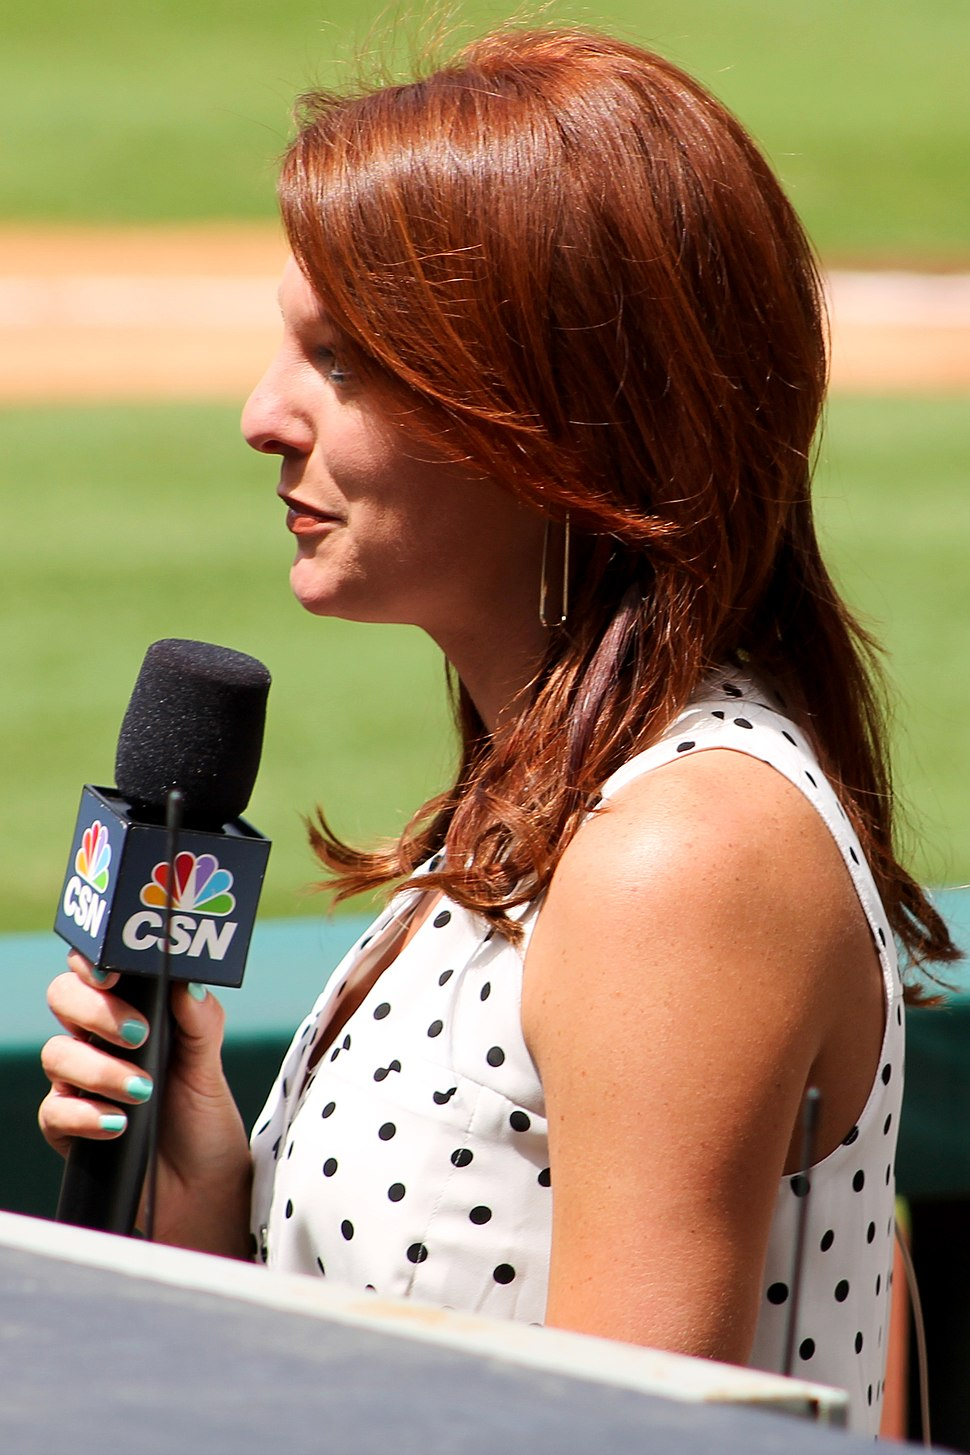 Julia Morales of CSN Houston in March 2014